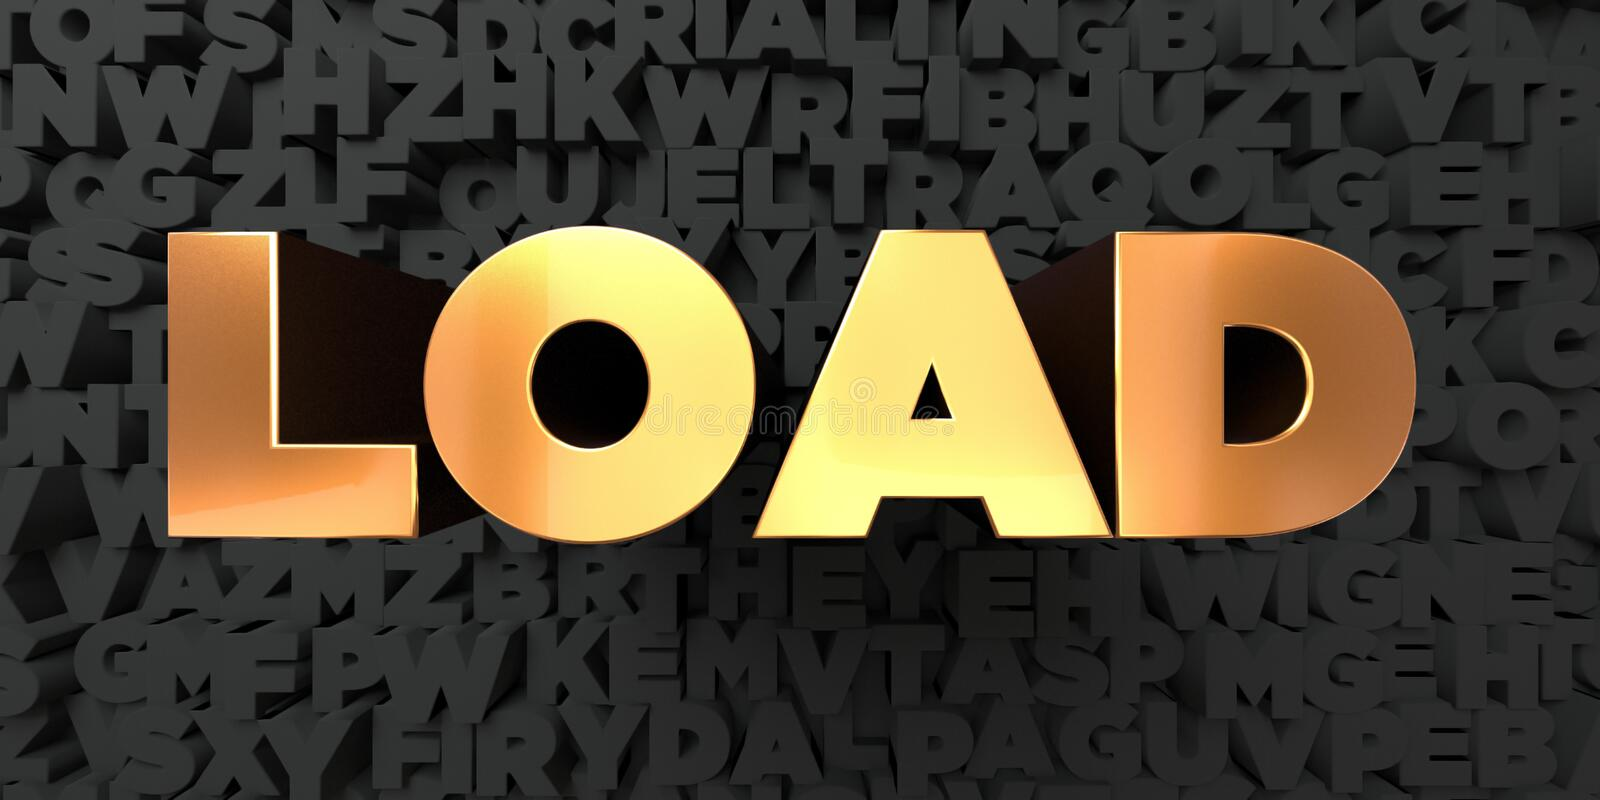 Load - Gold text on black background - 3D rendered royalty free stock picture. This image can be used for an online website banner ad or a print postcard vector illustration